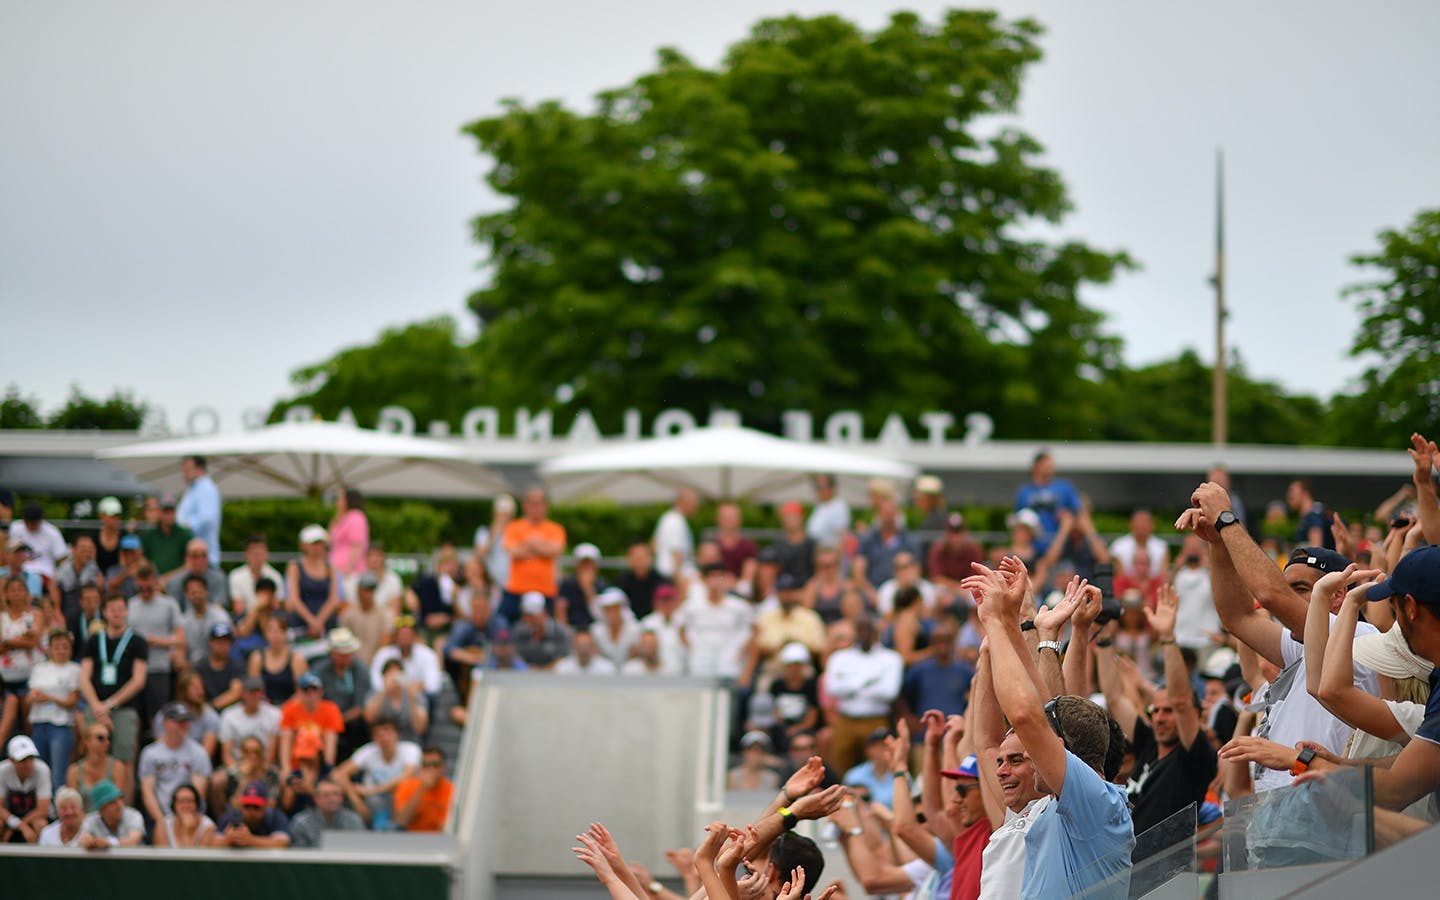 Public tribunes court 18 crowd